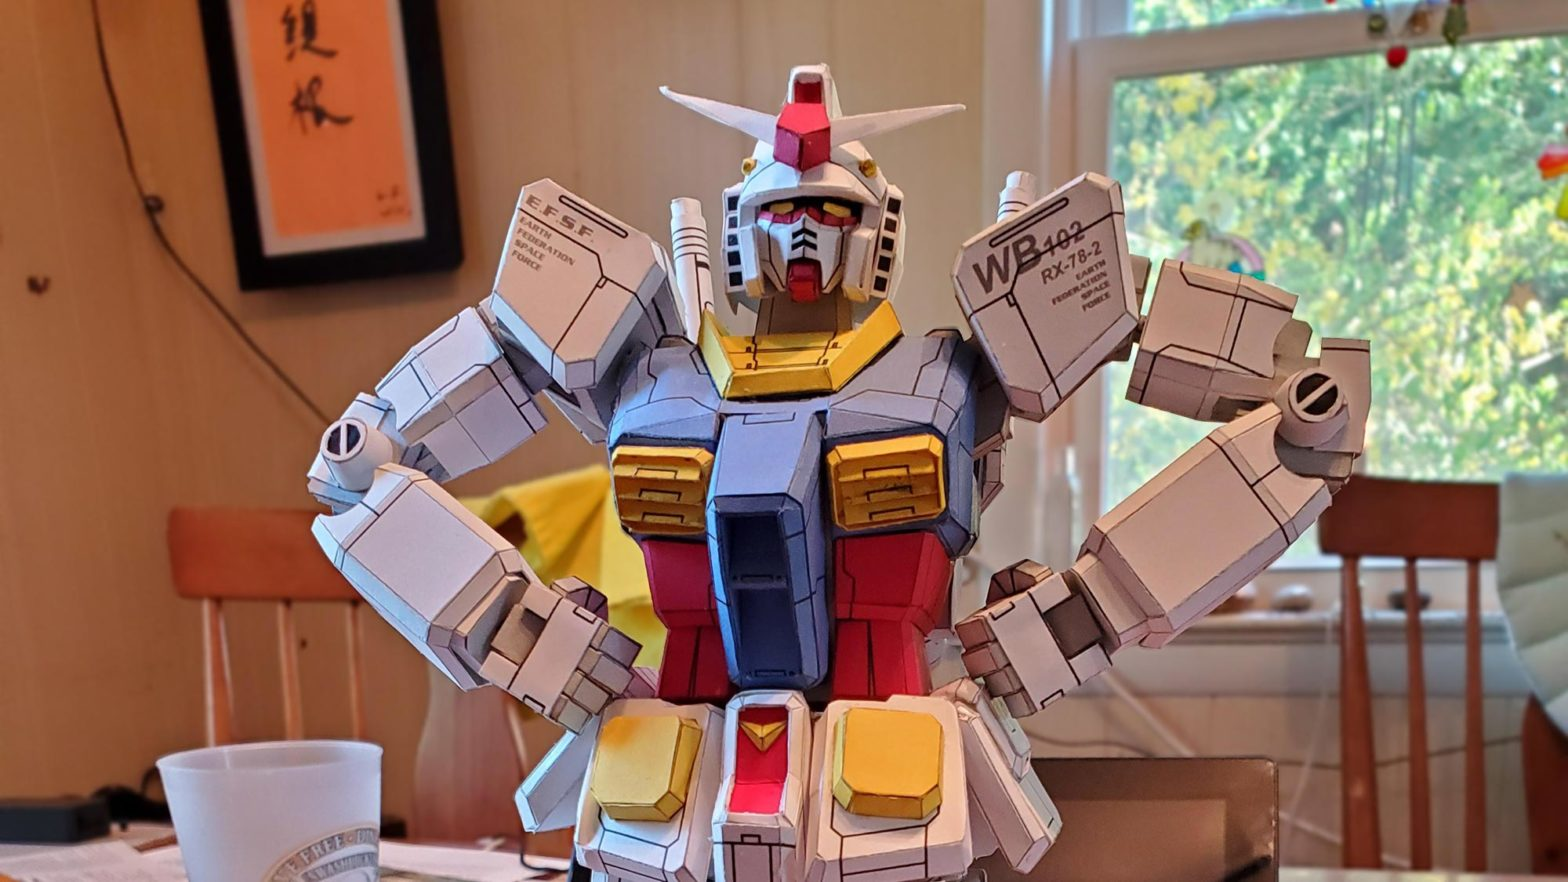 Paper-built Gundam Model by Ghakazian